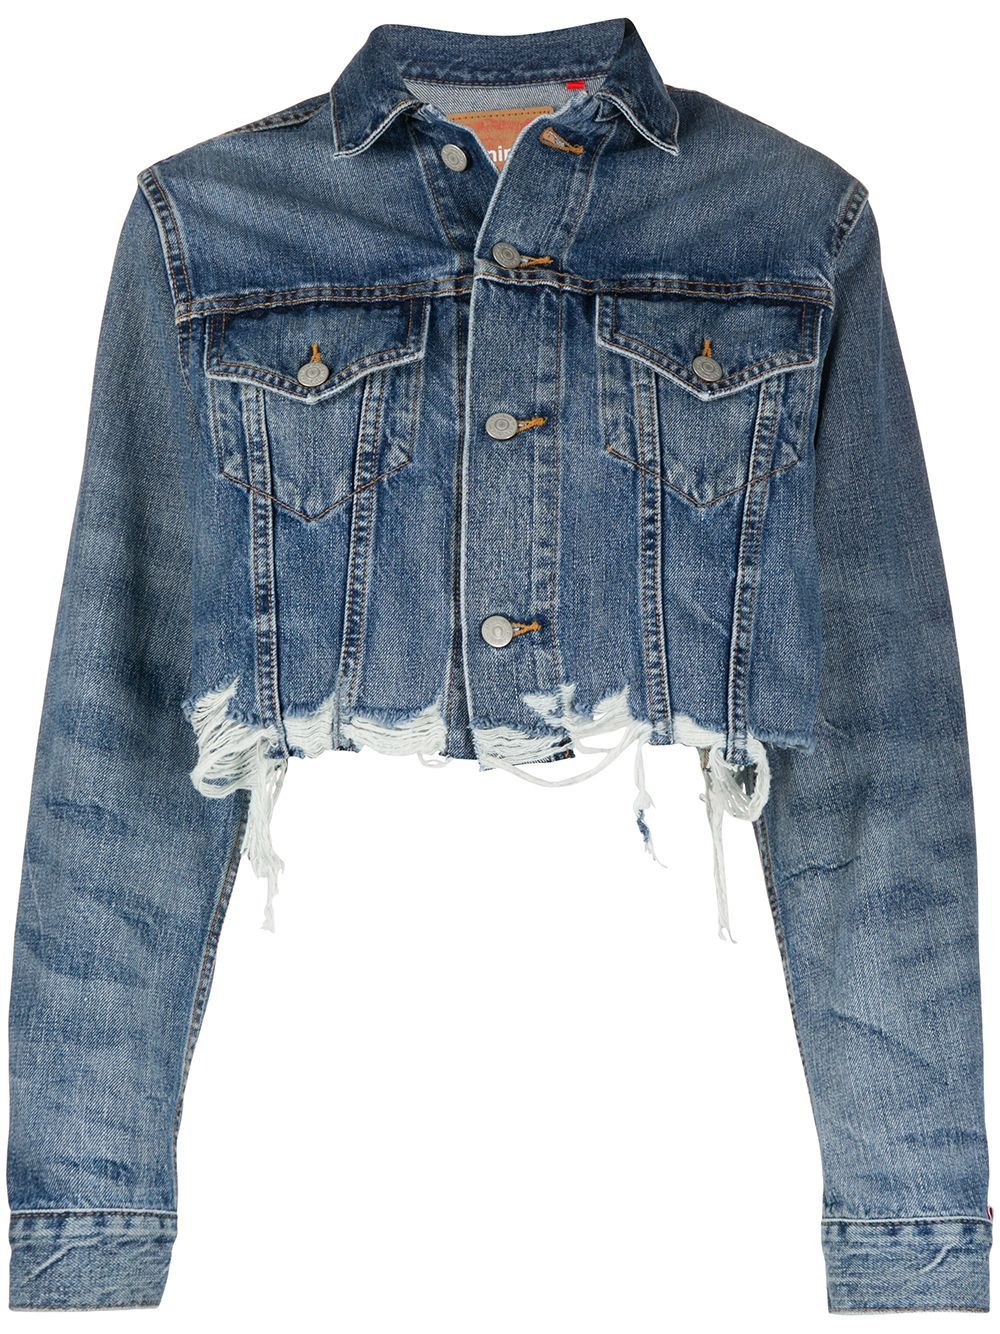 Blue denim cropped distressed effect jacket from Denimist featuring frayed edges, distressed effects, a cropped length, a classic collar, long sleeves, button cuffs, two front pockets and a button fastening.